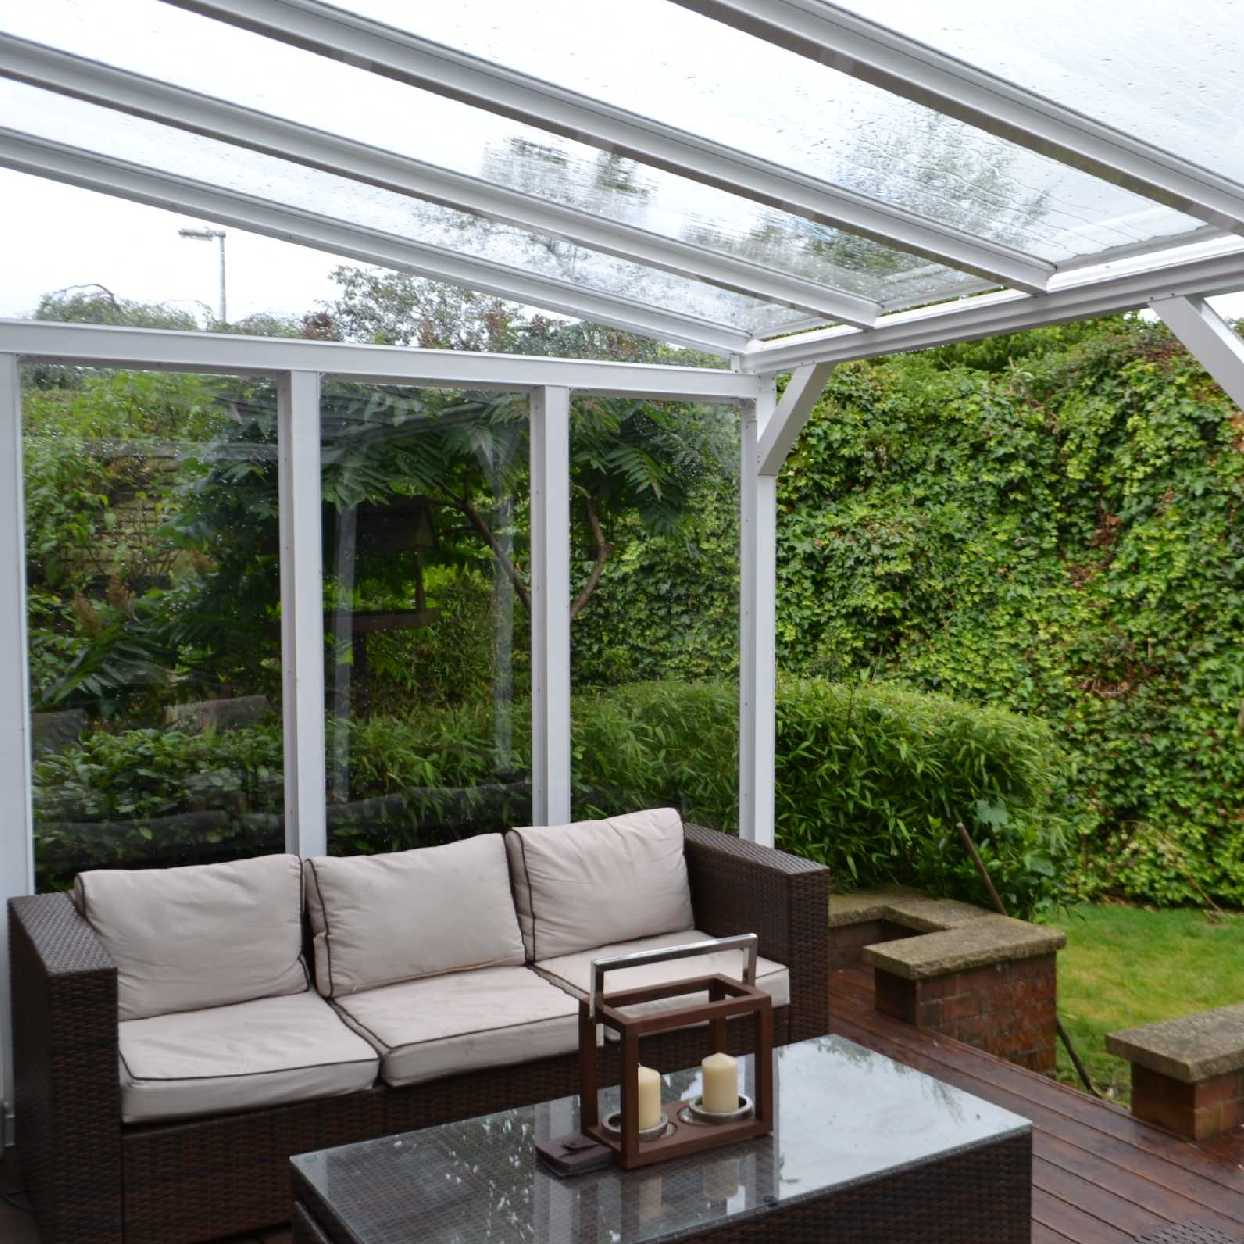 Great selection of Omega Smart Lean-To Canopy with 16mm Polycarbonate Glazing - 3.5m (W) x 4.0m (P), (3) Supporting Posts